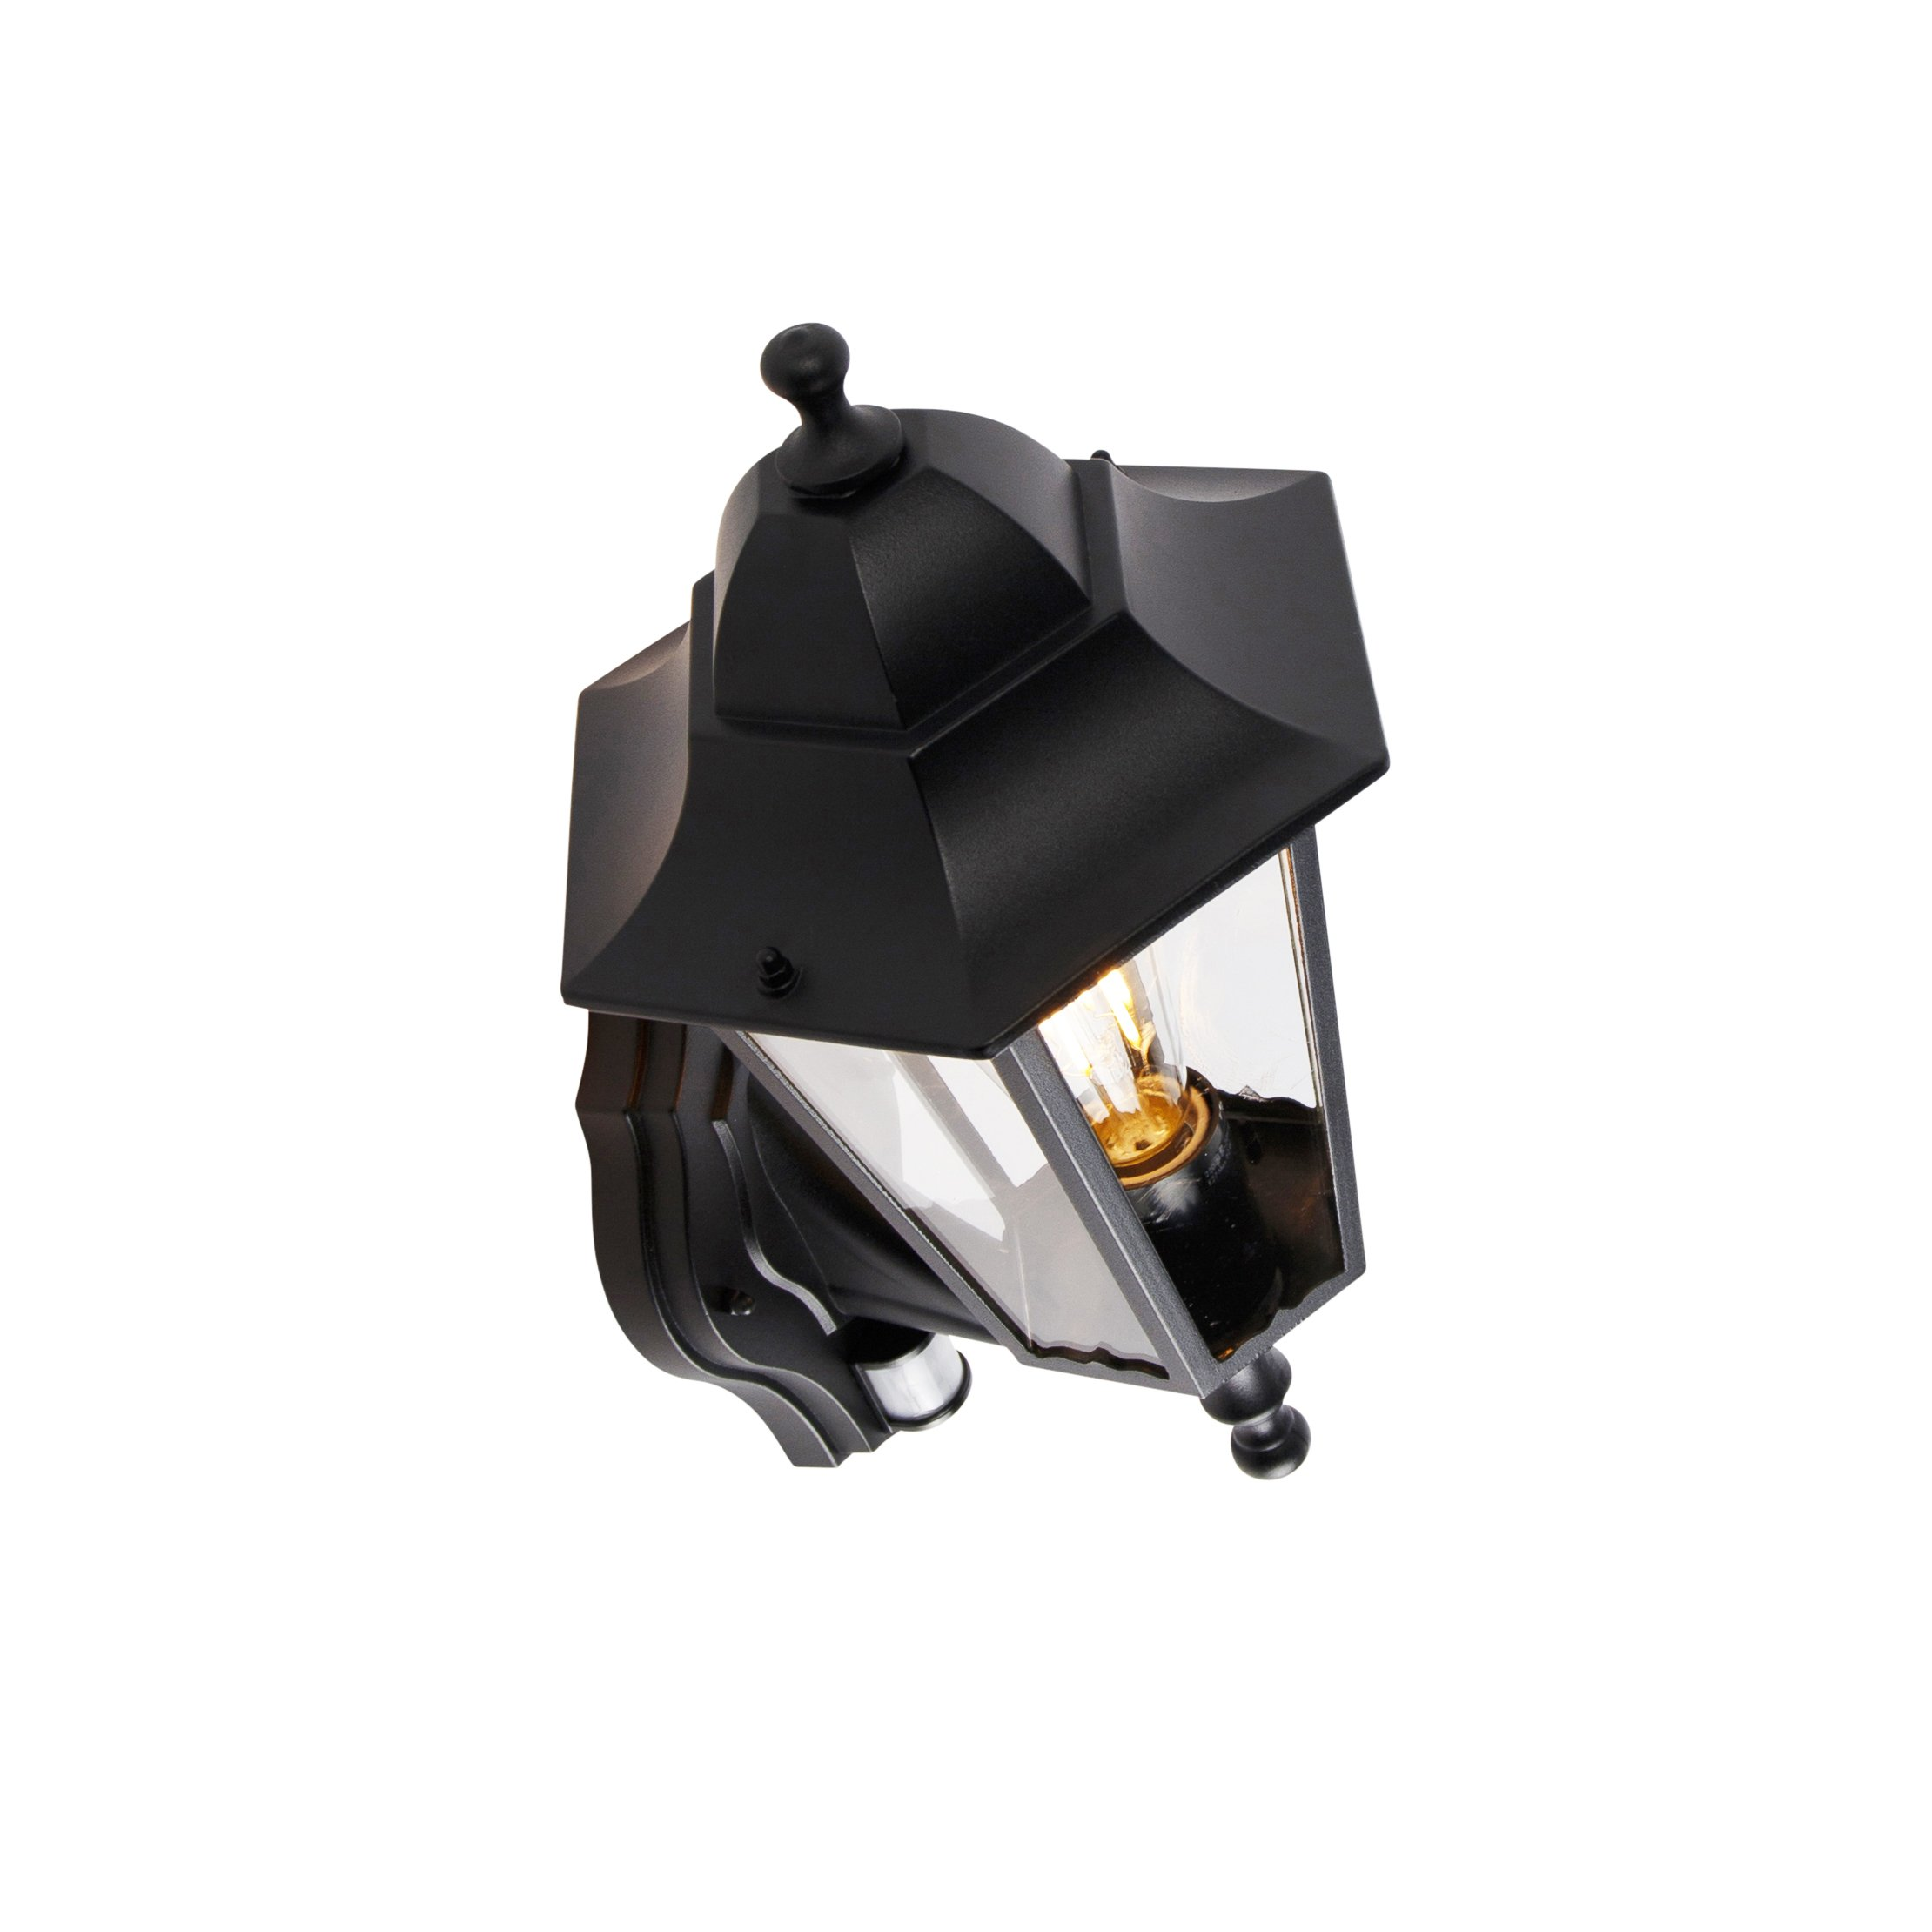 Outdoor wall lantern black with motion sensor IP44 - New Orleans